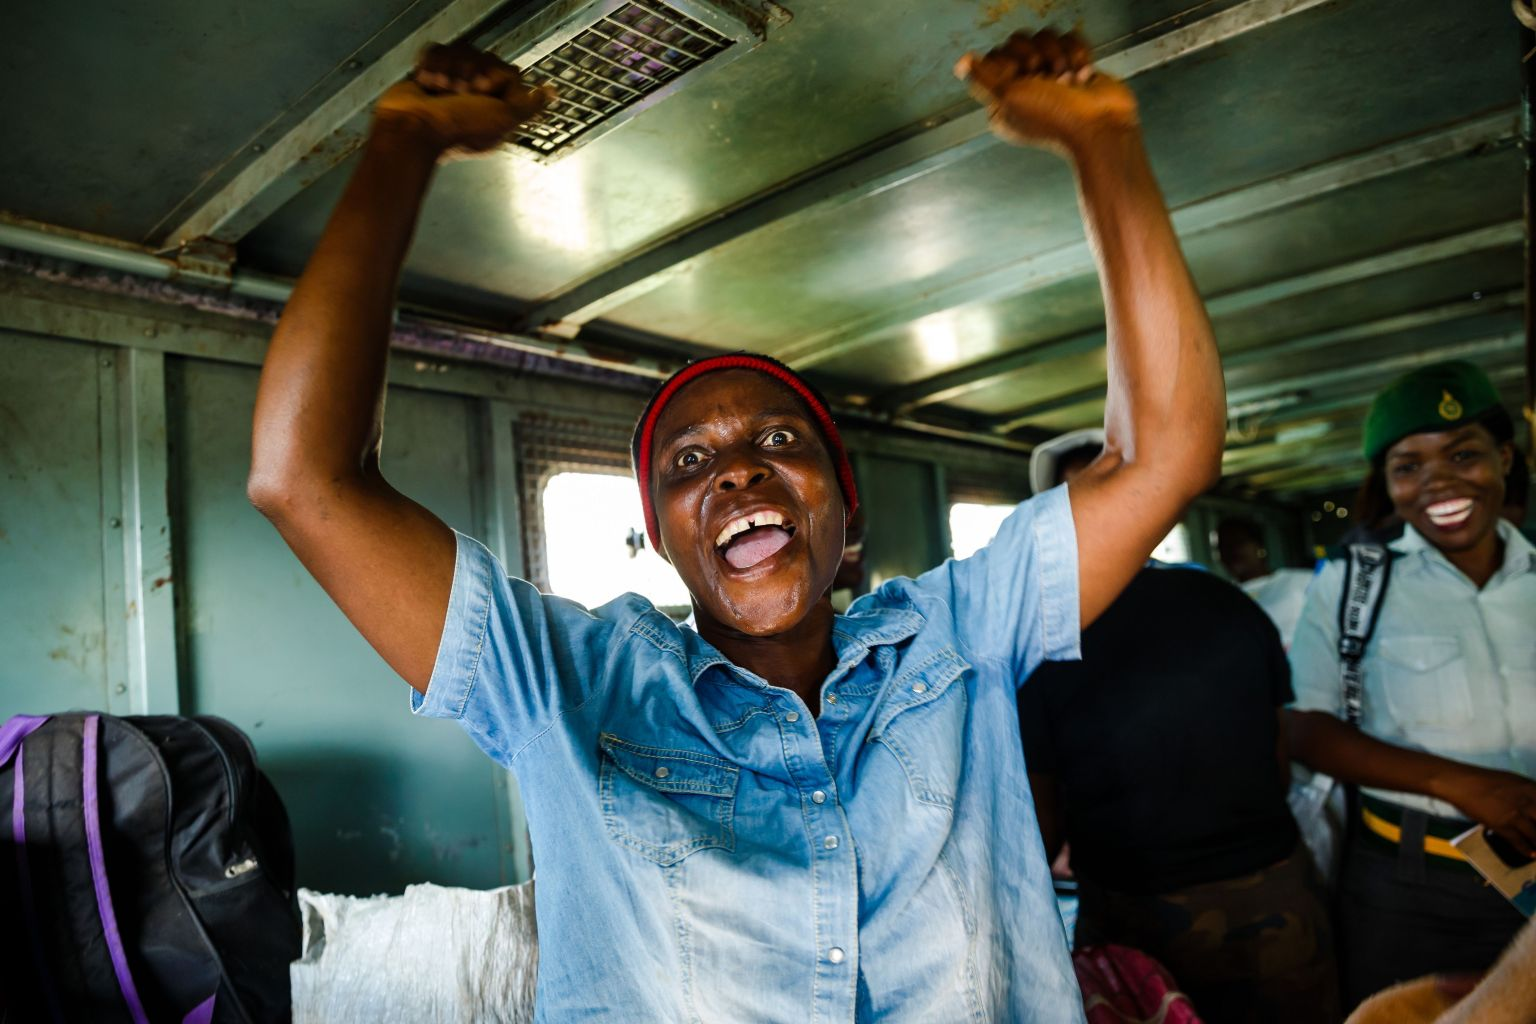 TOPSHOT - Female prisoners celebrate with songs in the back of a prison's truck as she is released from the Chikurubi Prison, in Harare, on March 22, 2018. Zimbabwean President Emmerson Mnangagwa, who succeeded ousted Robert Mugabe in November, has pardoned at least 3,000 prisoners to clear out overpopulated jails, officials said on March 22 2018. The pardon will see the release of all female prisoners except those serving life terms, as well as all disabled and juvenile prisoners. Terminally-ill prisoners and those above the age of 60 who have served a third of their time will also be freed.   / AFP PHOTO / Jekesai NJIKIZANA        (Photo credit should read JEKESAI NJIKIZANA/AFP/Getty Images)